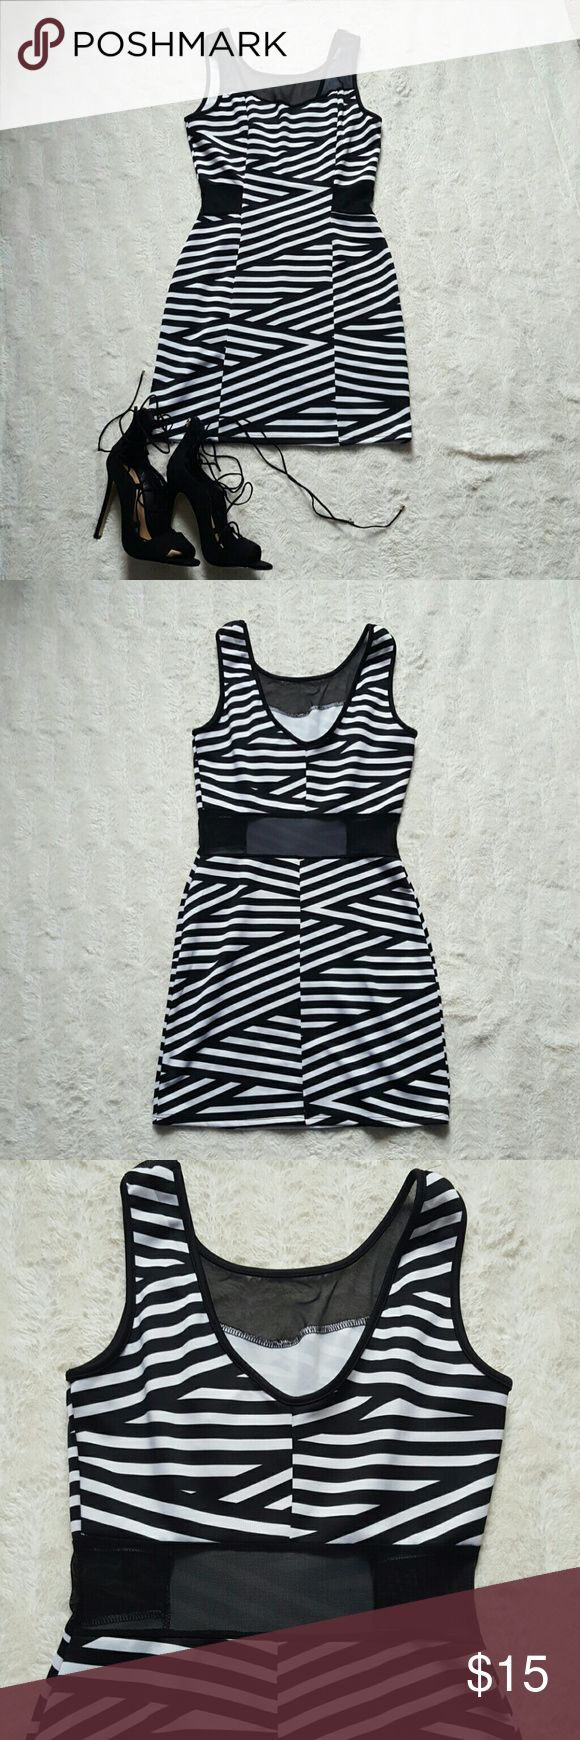 Body Central dress with black mesh cutouts Brand new NEVER worn!! Black and white stripped mini dress with mesh cutouts. Super cute on just not my size. Body Central Dresses Mini